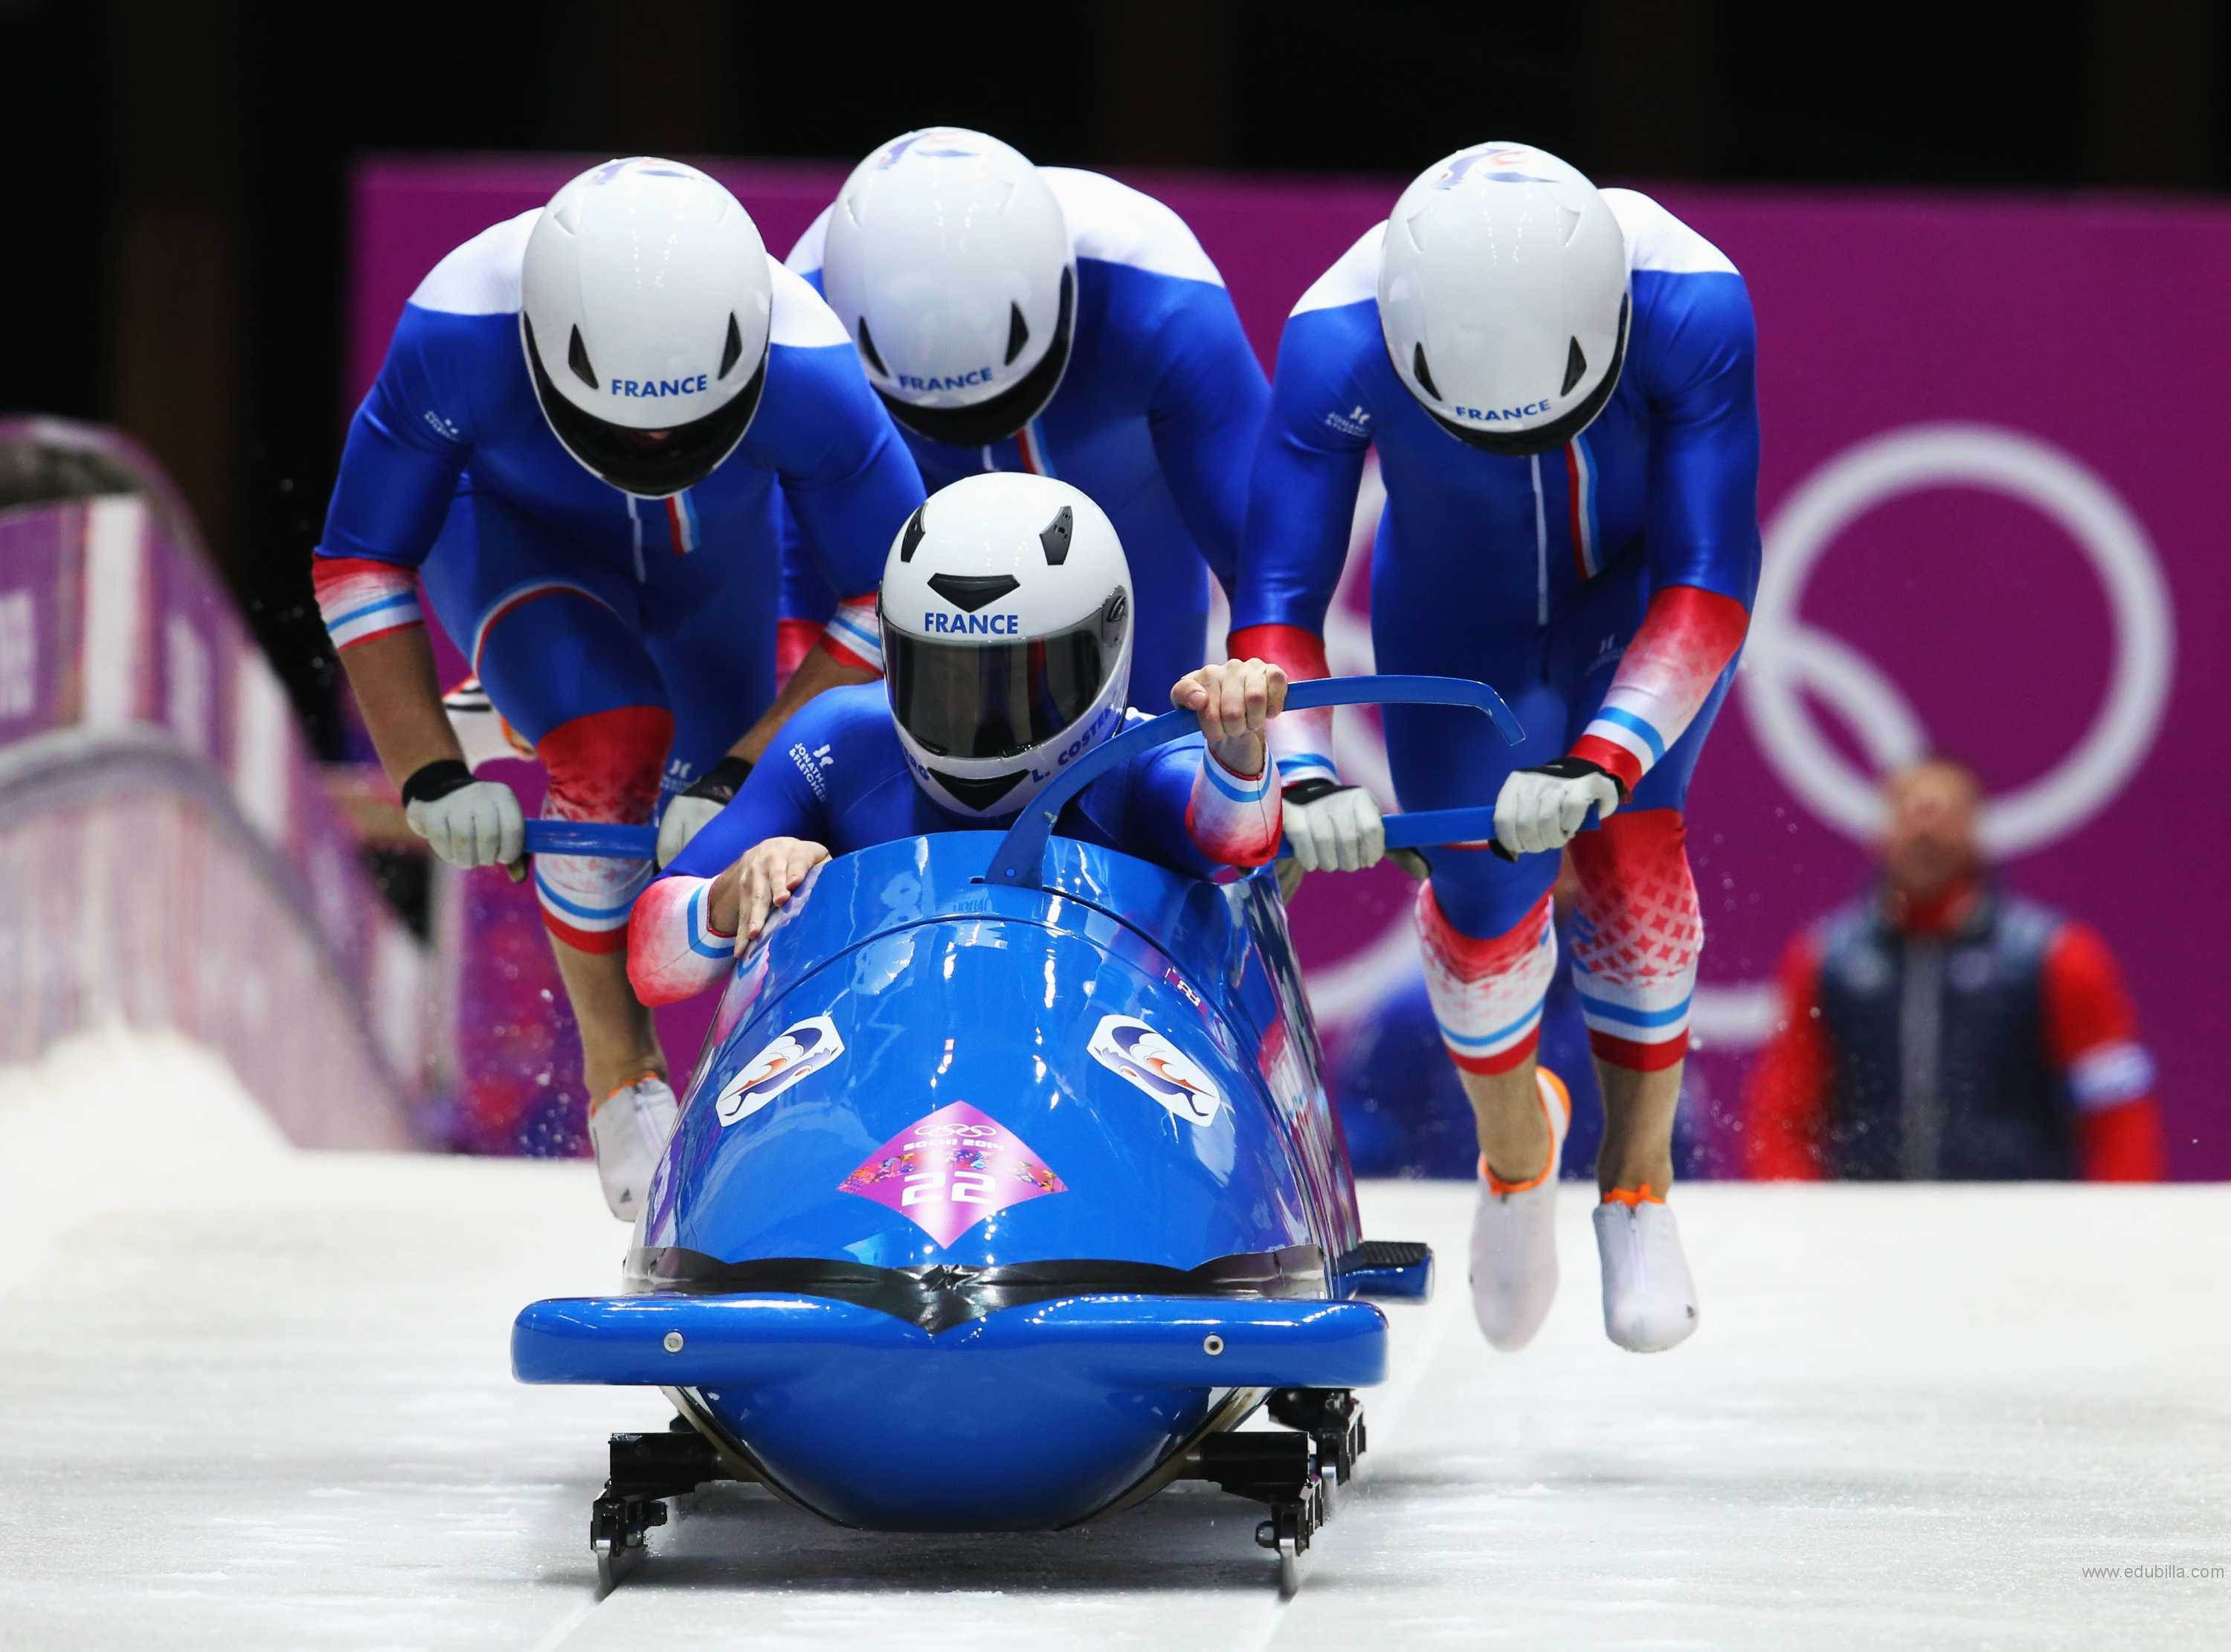 Images of Bobsleigh | 3000x2222